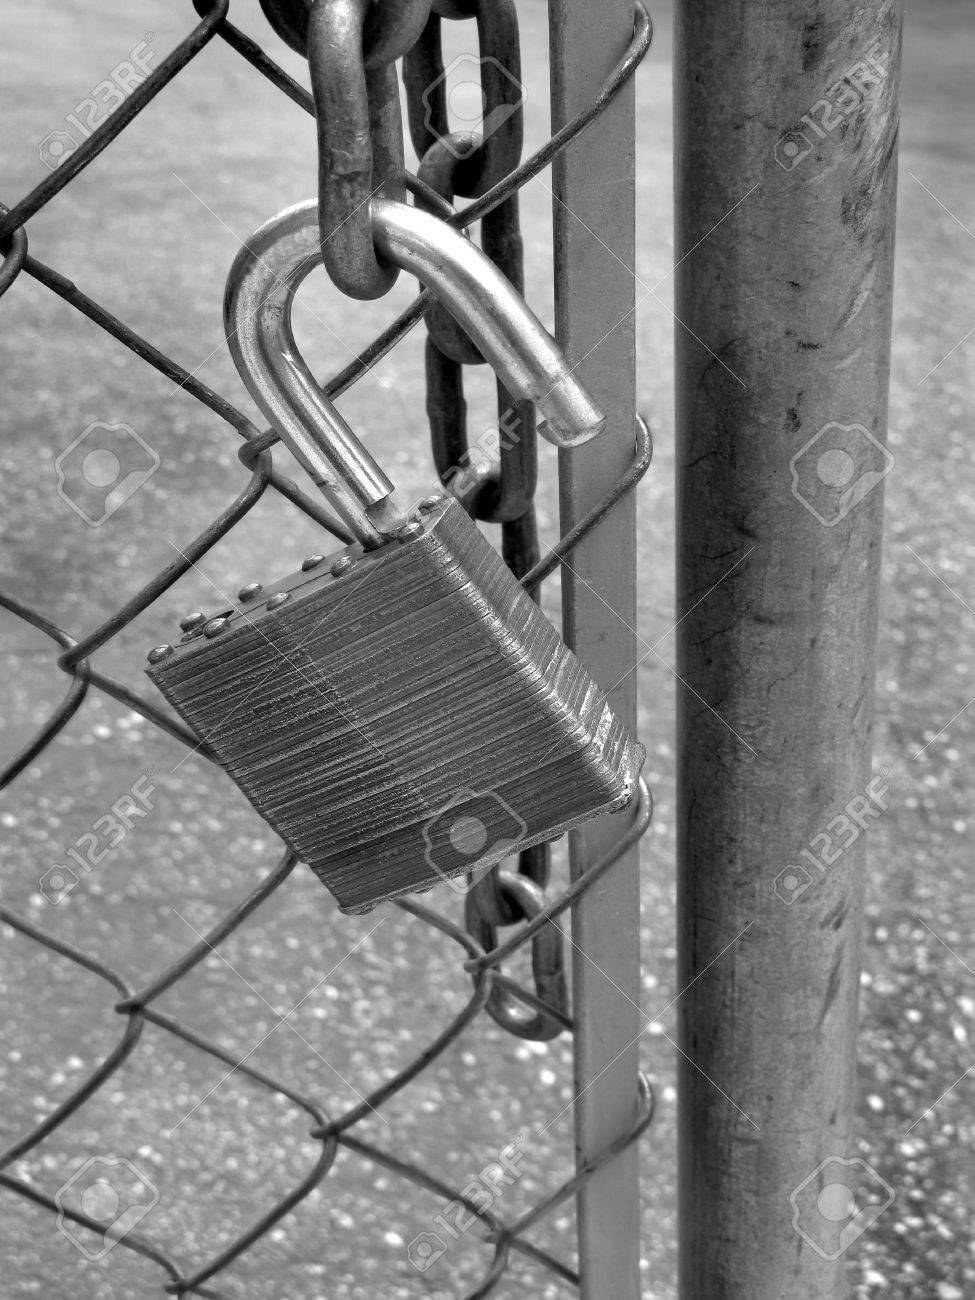 Lock and chain on fence gate illustrating security Stock Photo - 11030744